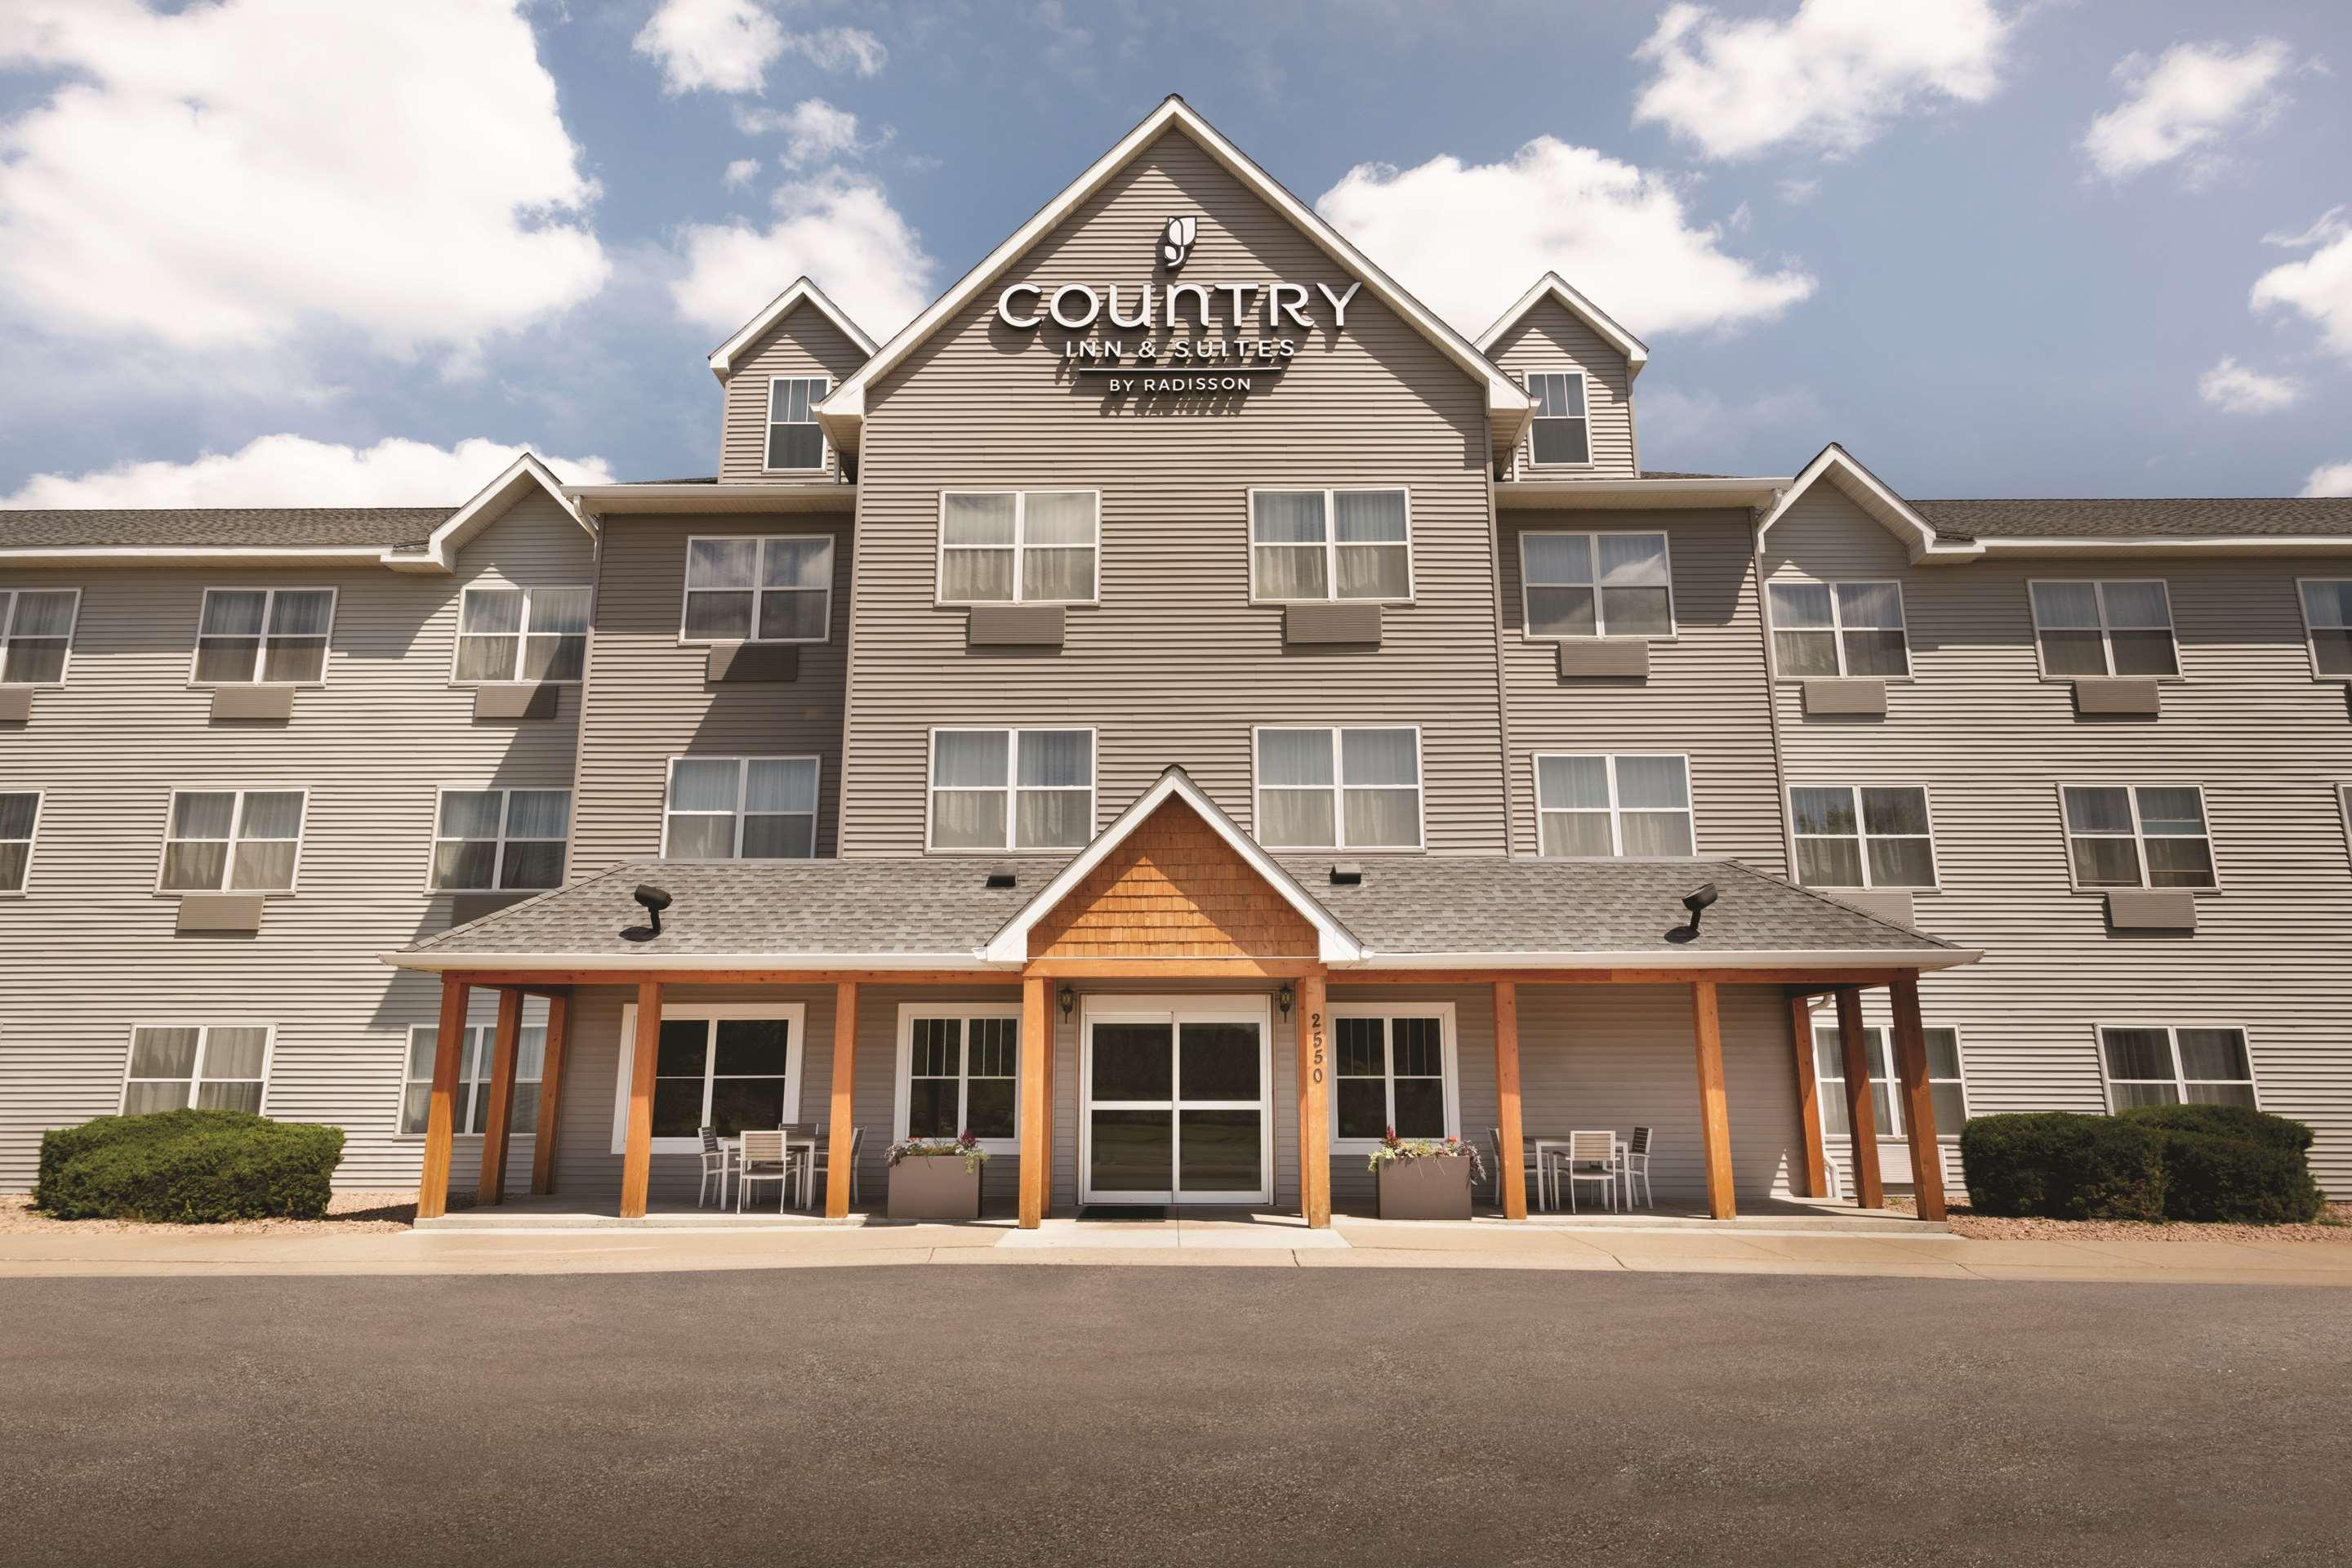 Country Inn & Suites by Radisson, Brooklyn Center